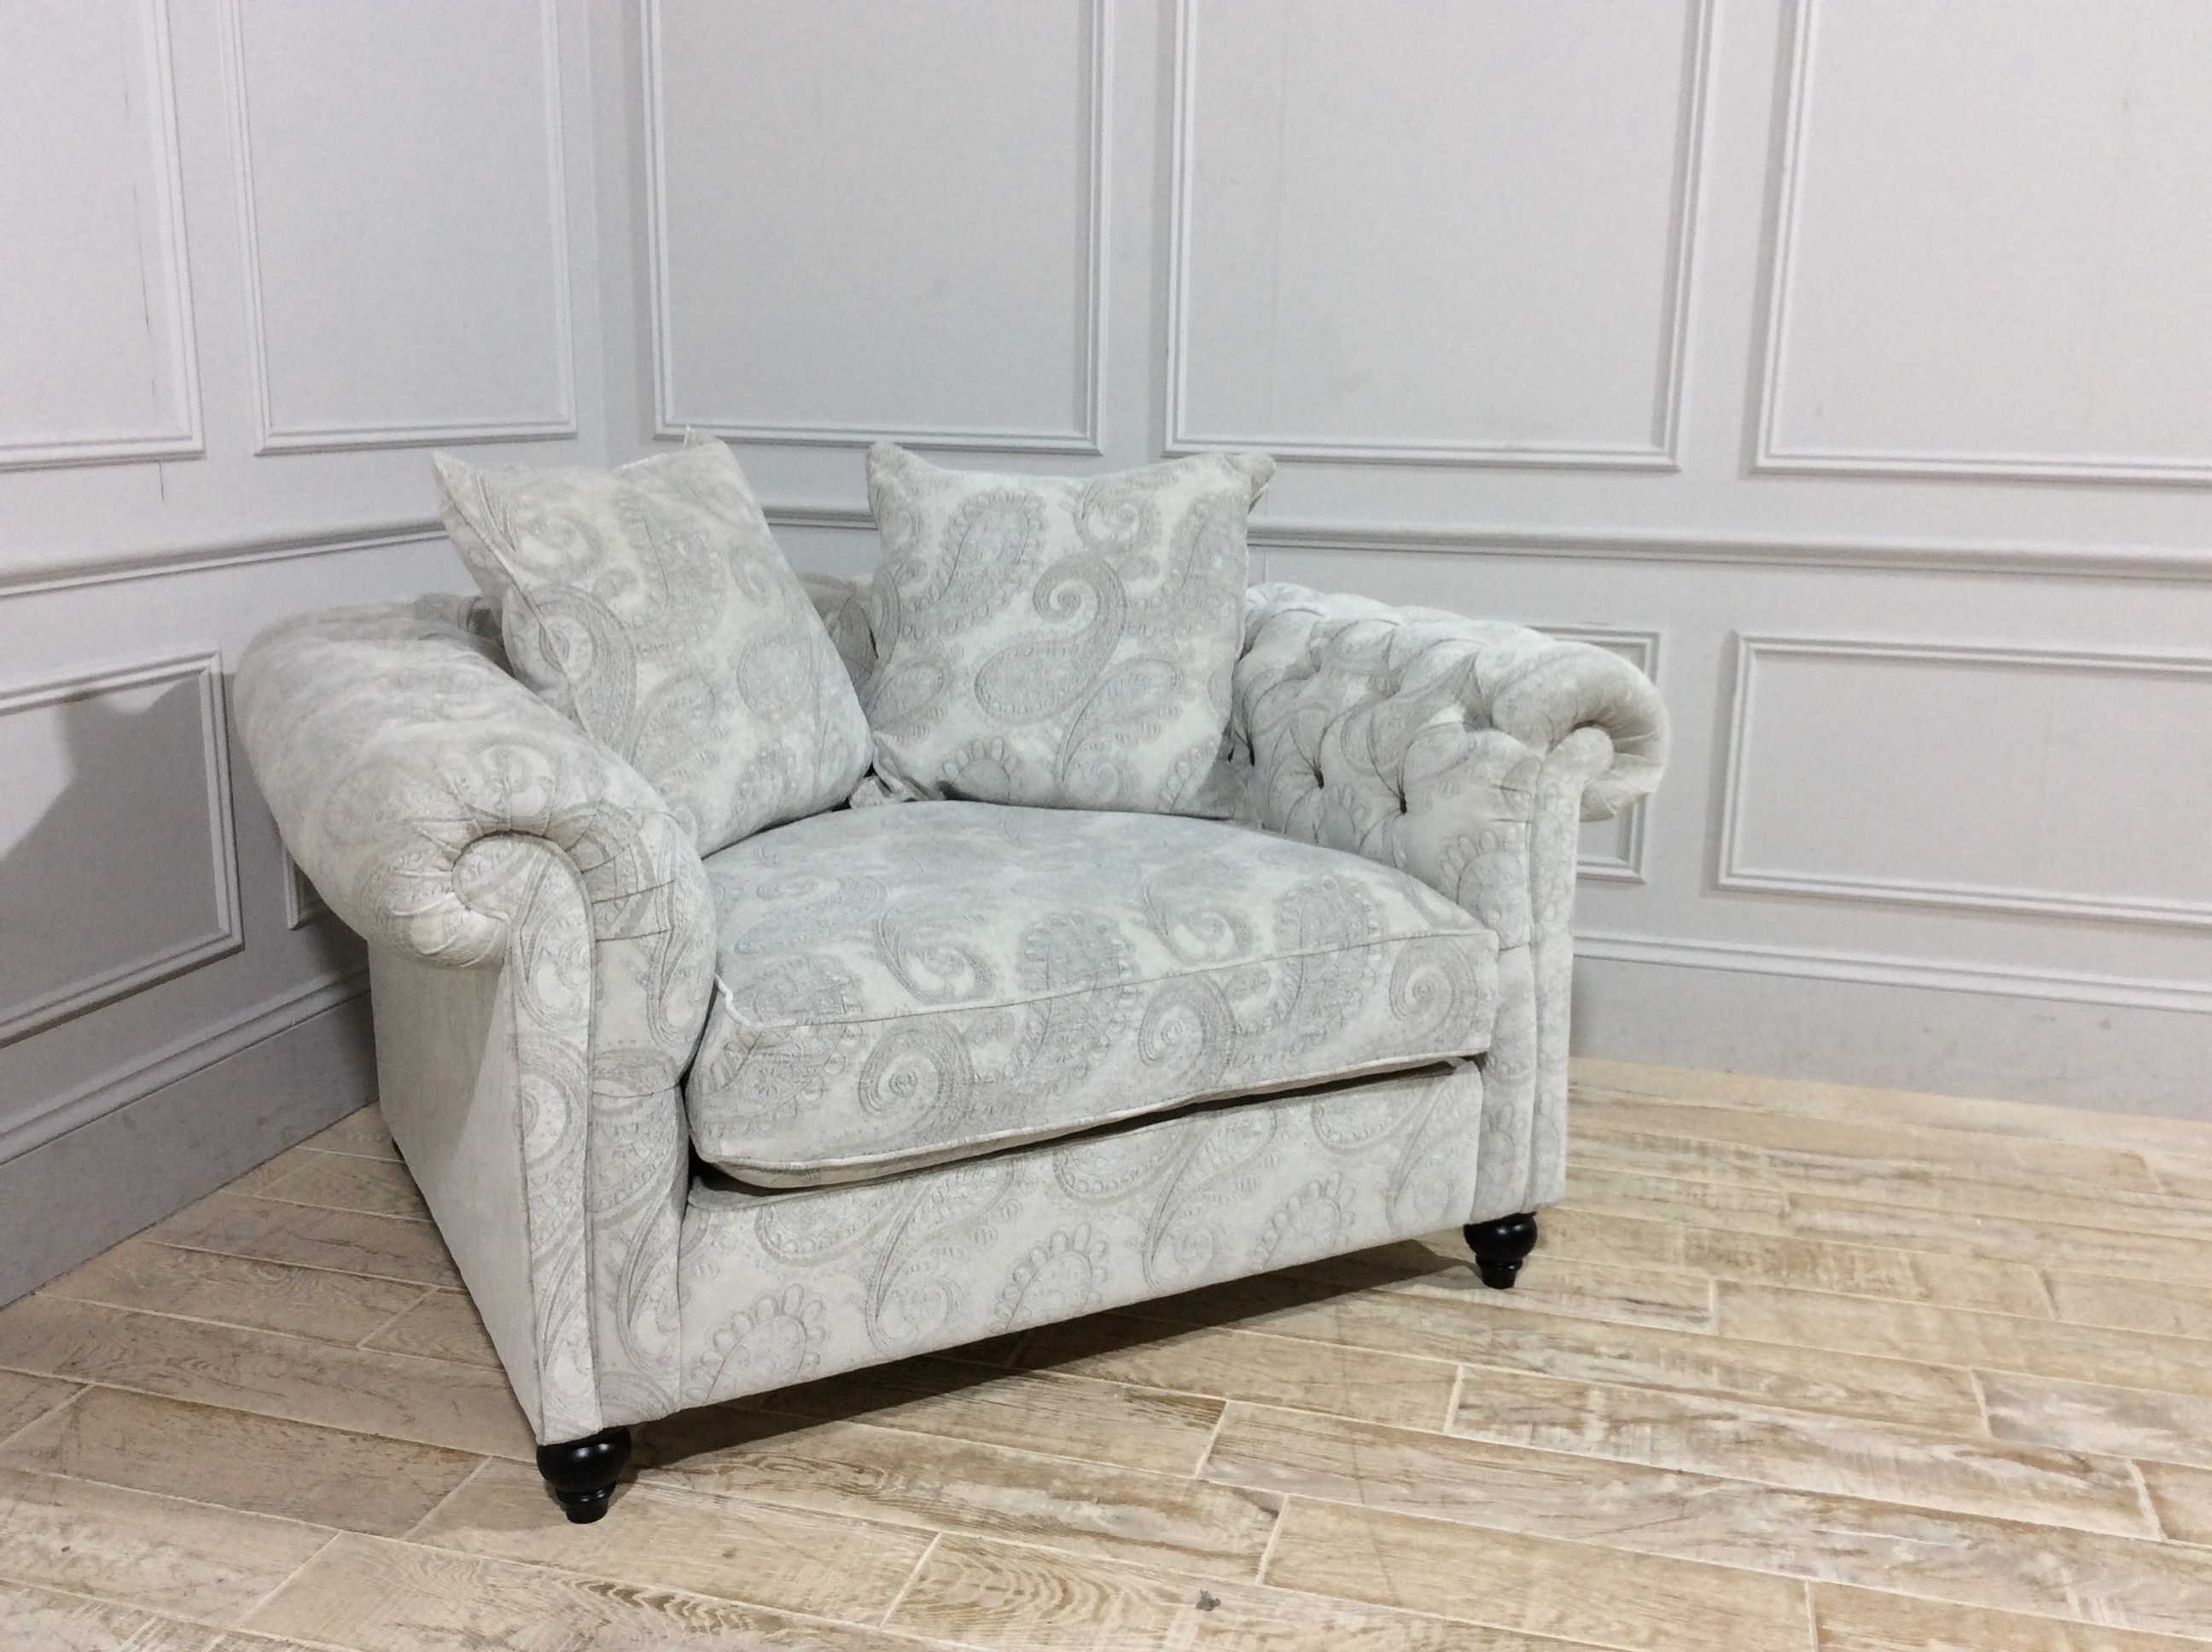 Duresta Connaught Fabric Grand Reading Chair in Plush Paisley Silver